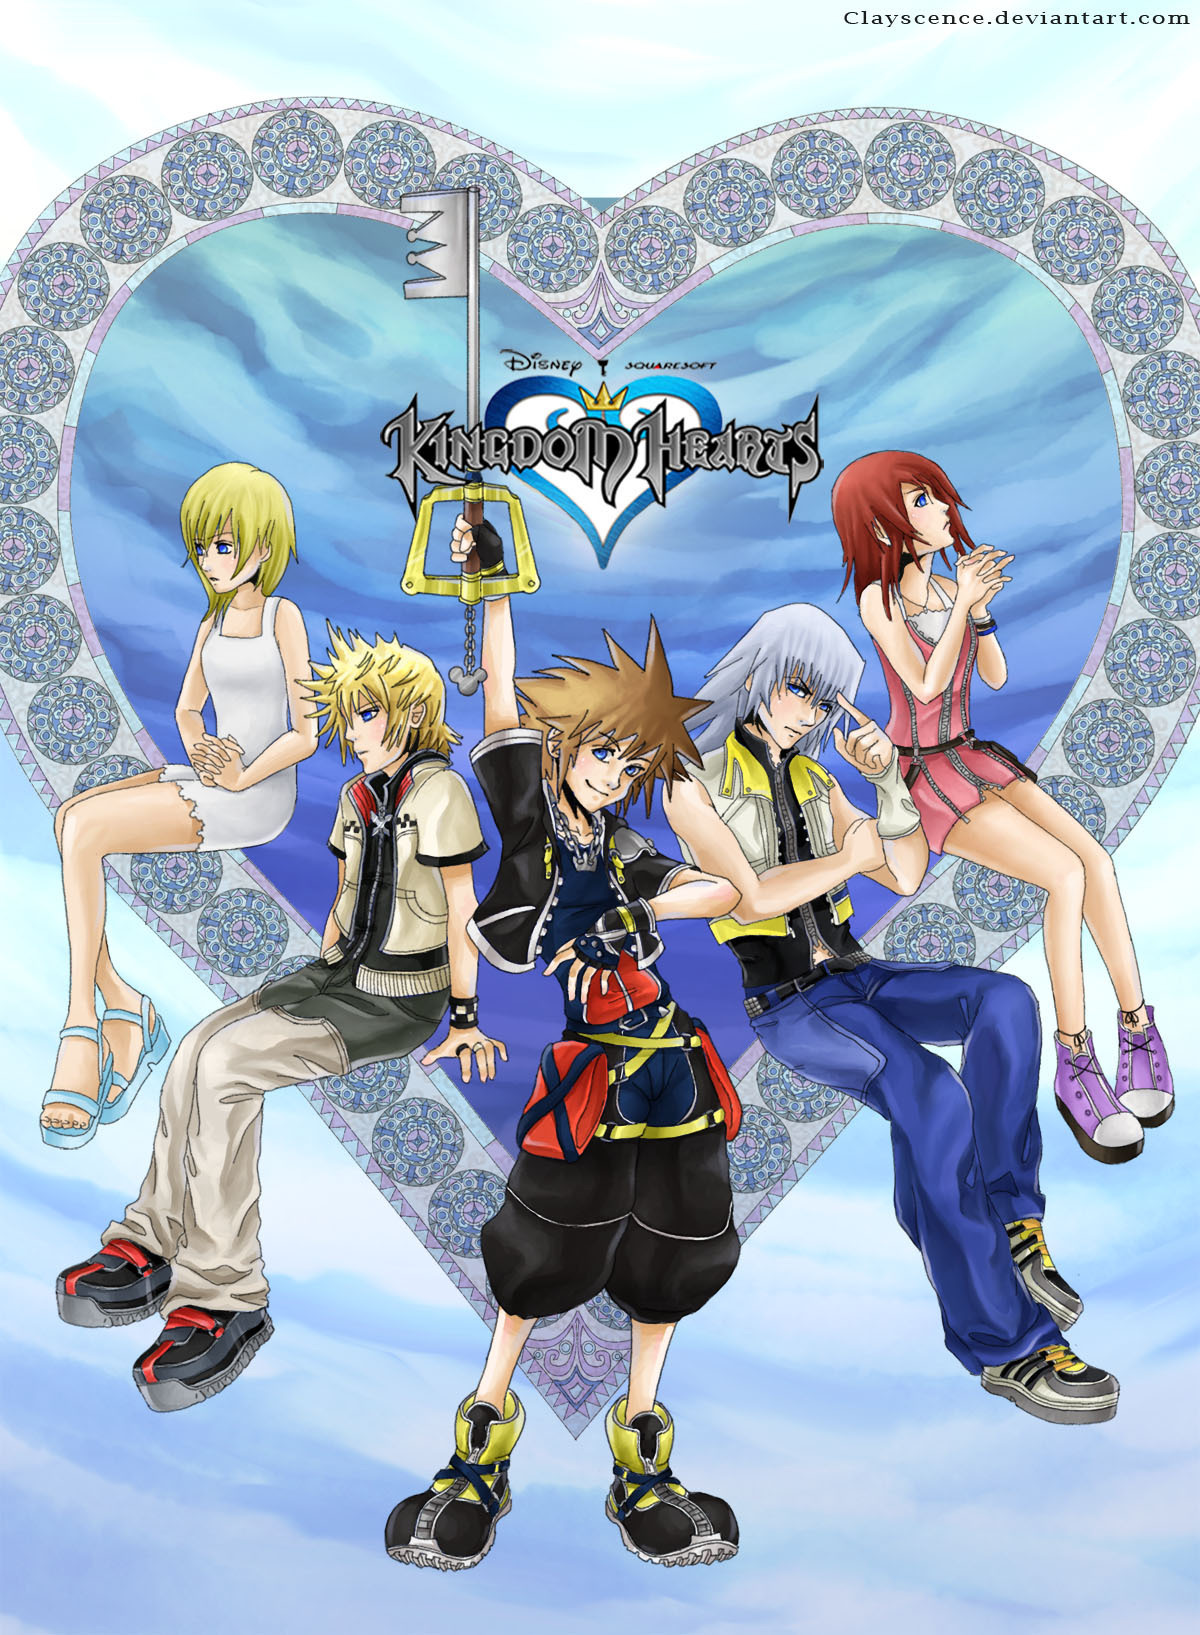 kingdom hearts images - photo #19